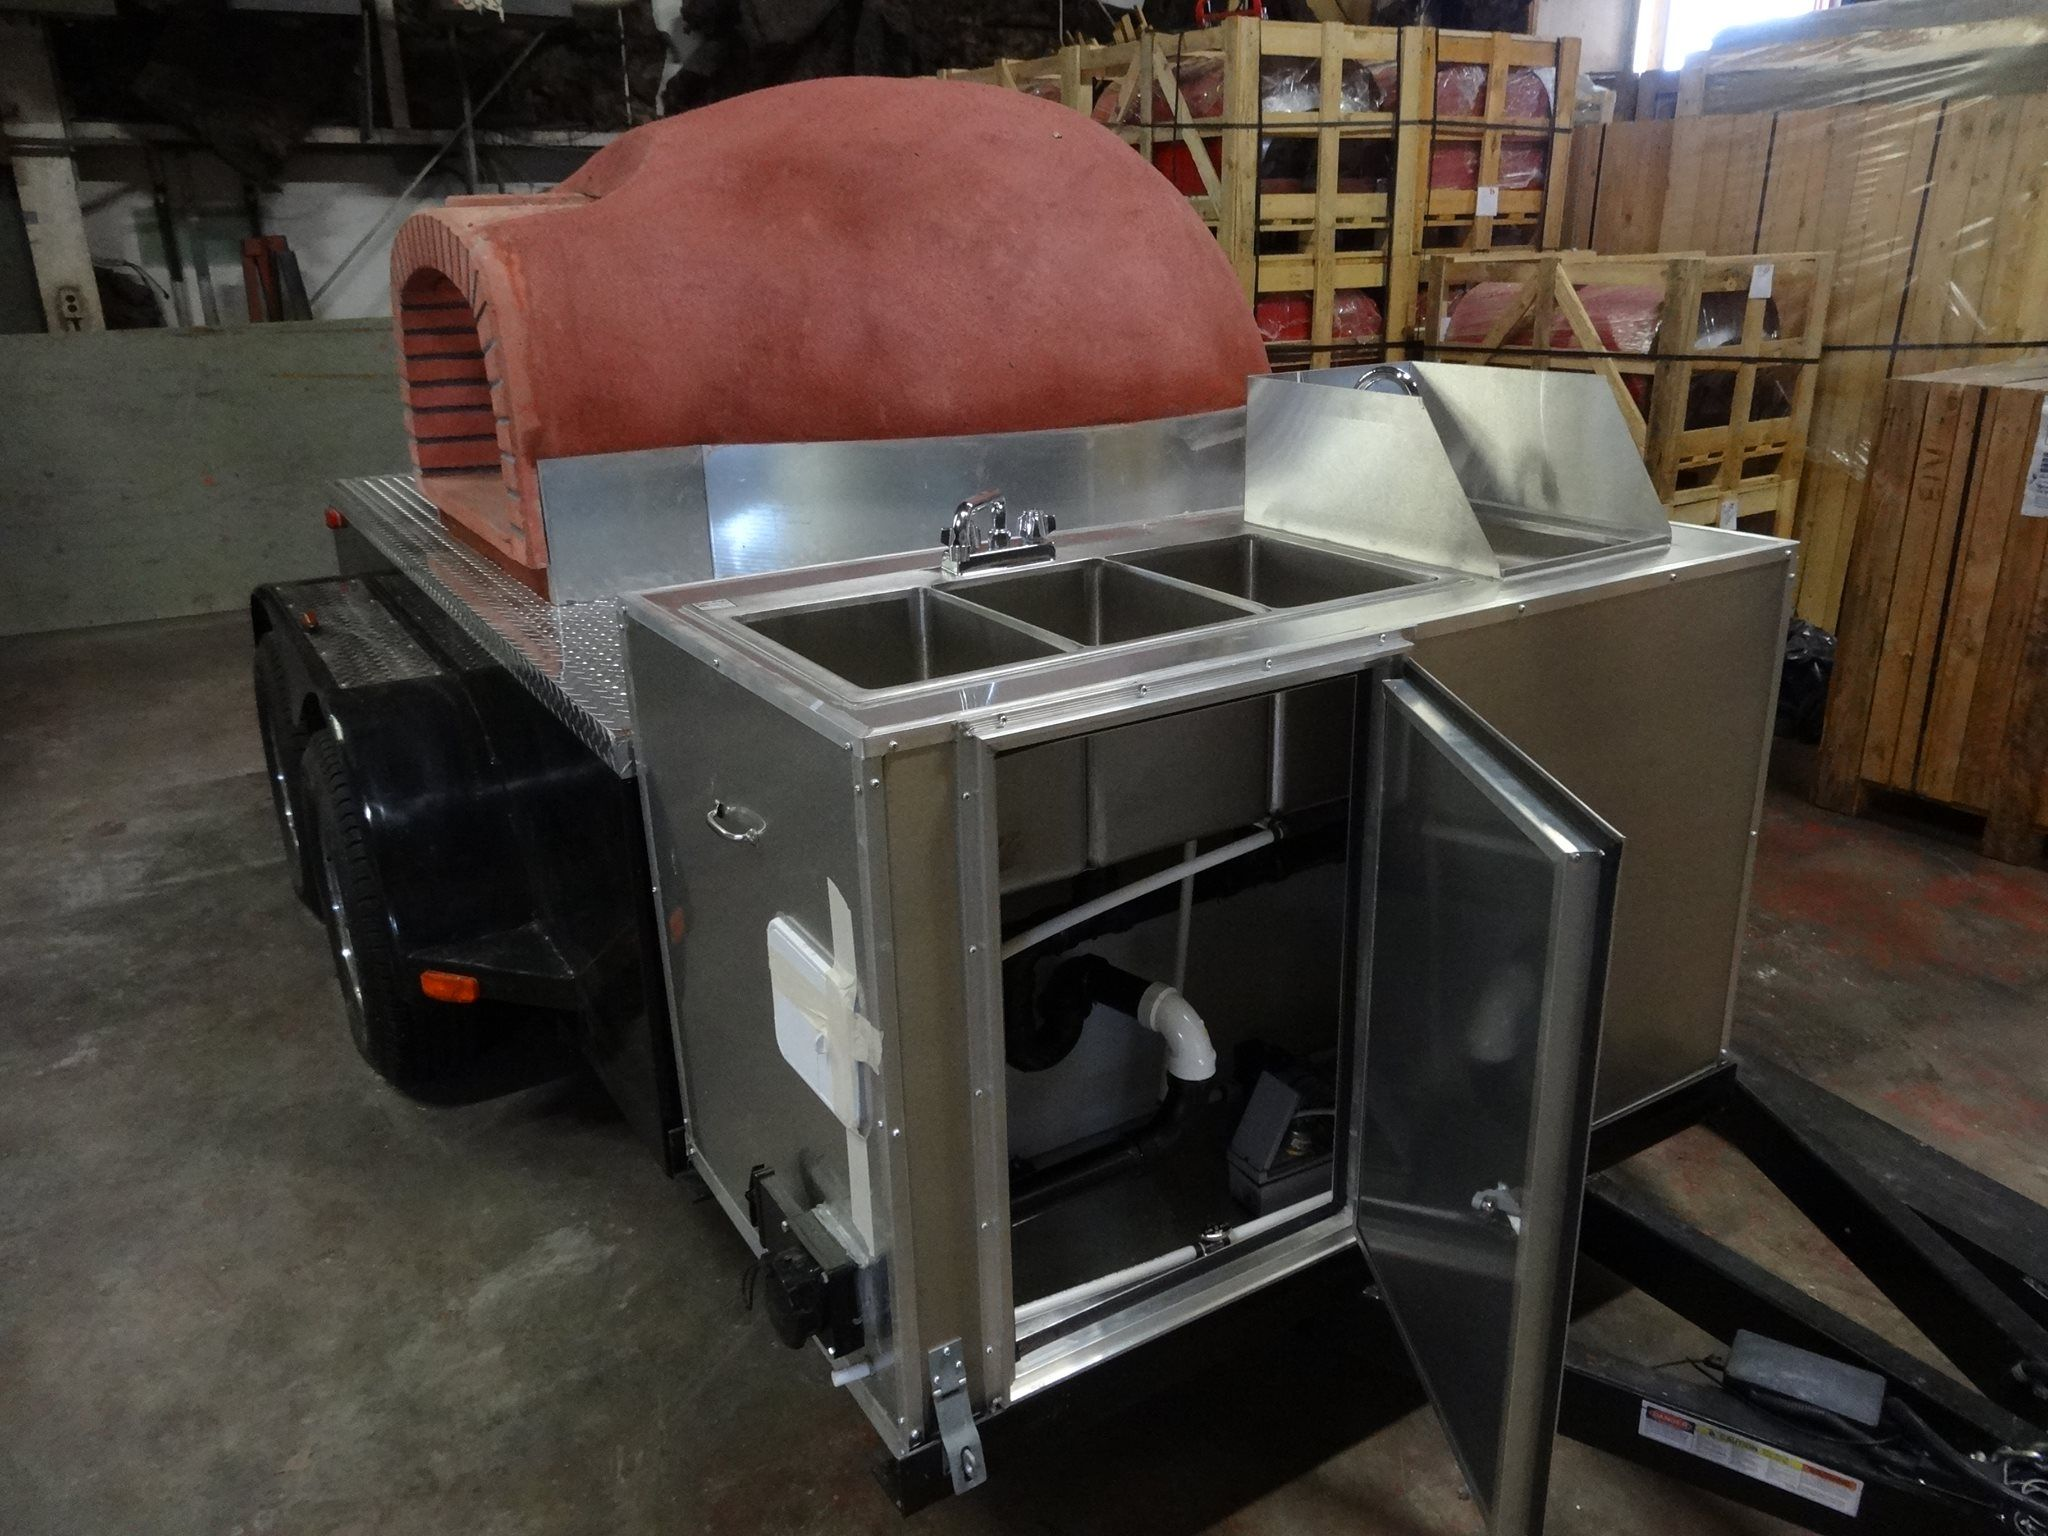 Portable wood fired pizza oven for sale - We Install Mobile Wood Fired Pizza Ovens For Pizza Trucks The Perfect Addition To Any Catering Business Or Restaurant